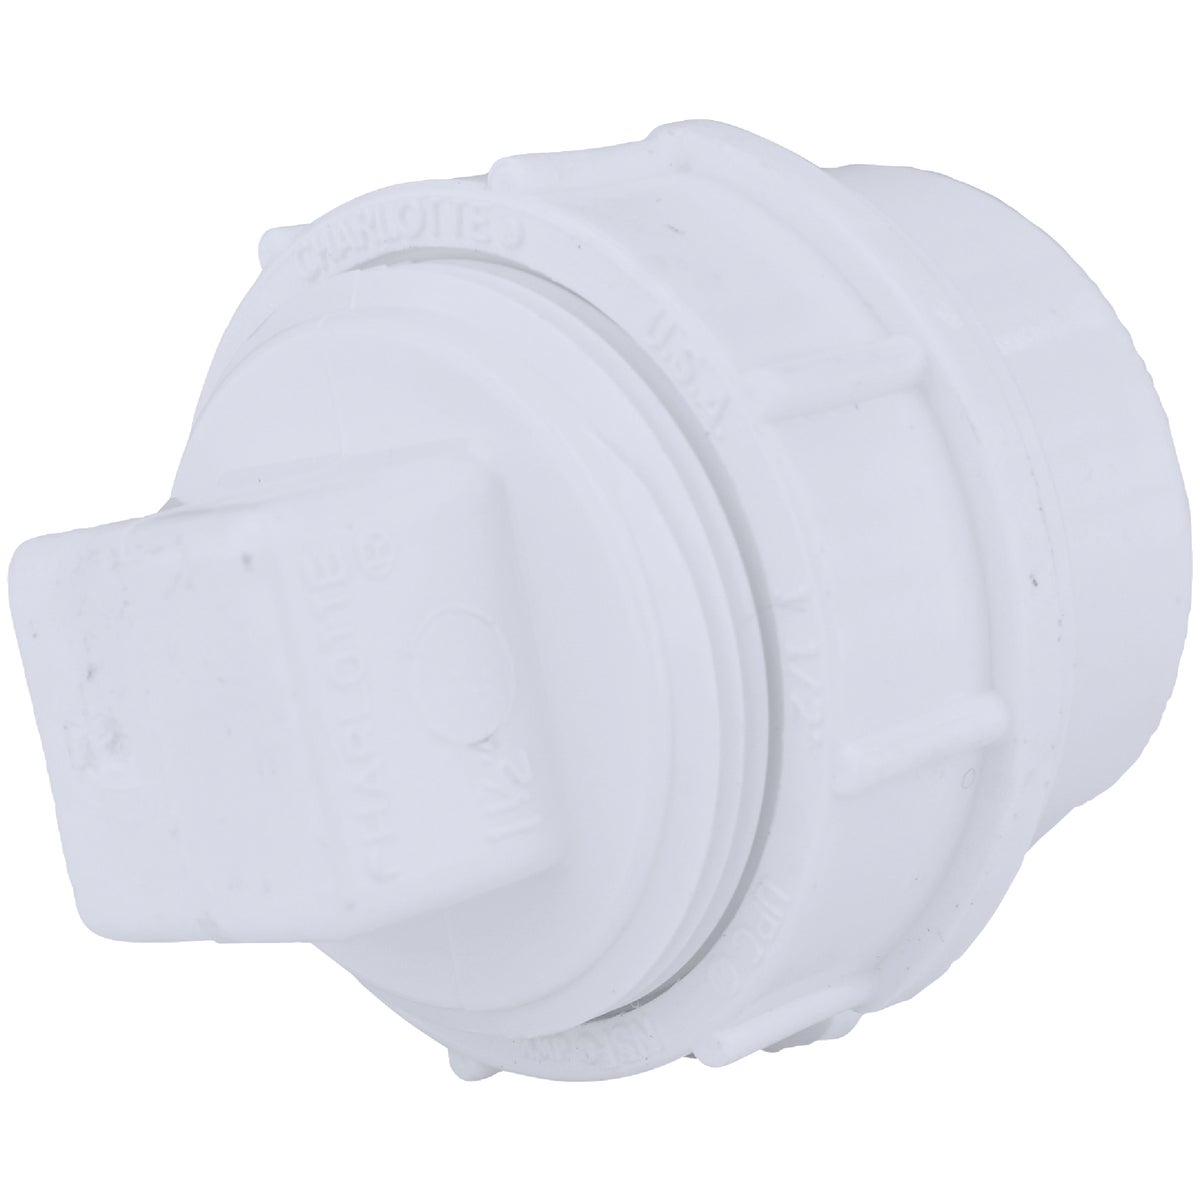 "1-1/2"" CLEANOUT W/PLUG - 71615 by Genova Inc  Pvc Dwv"